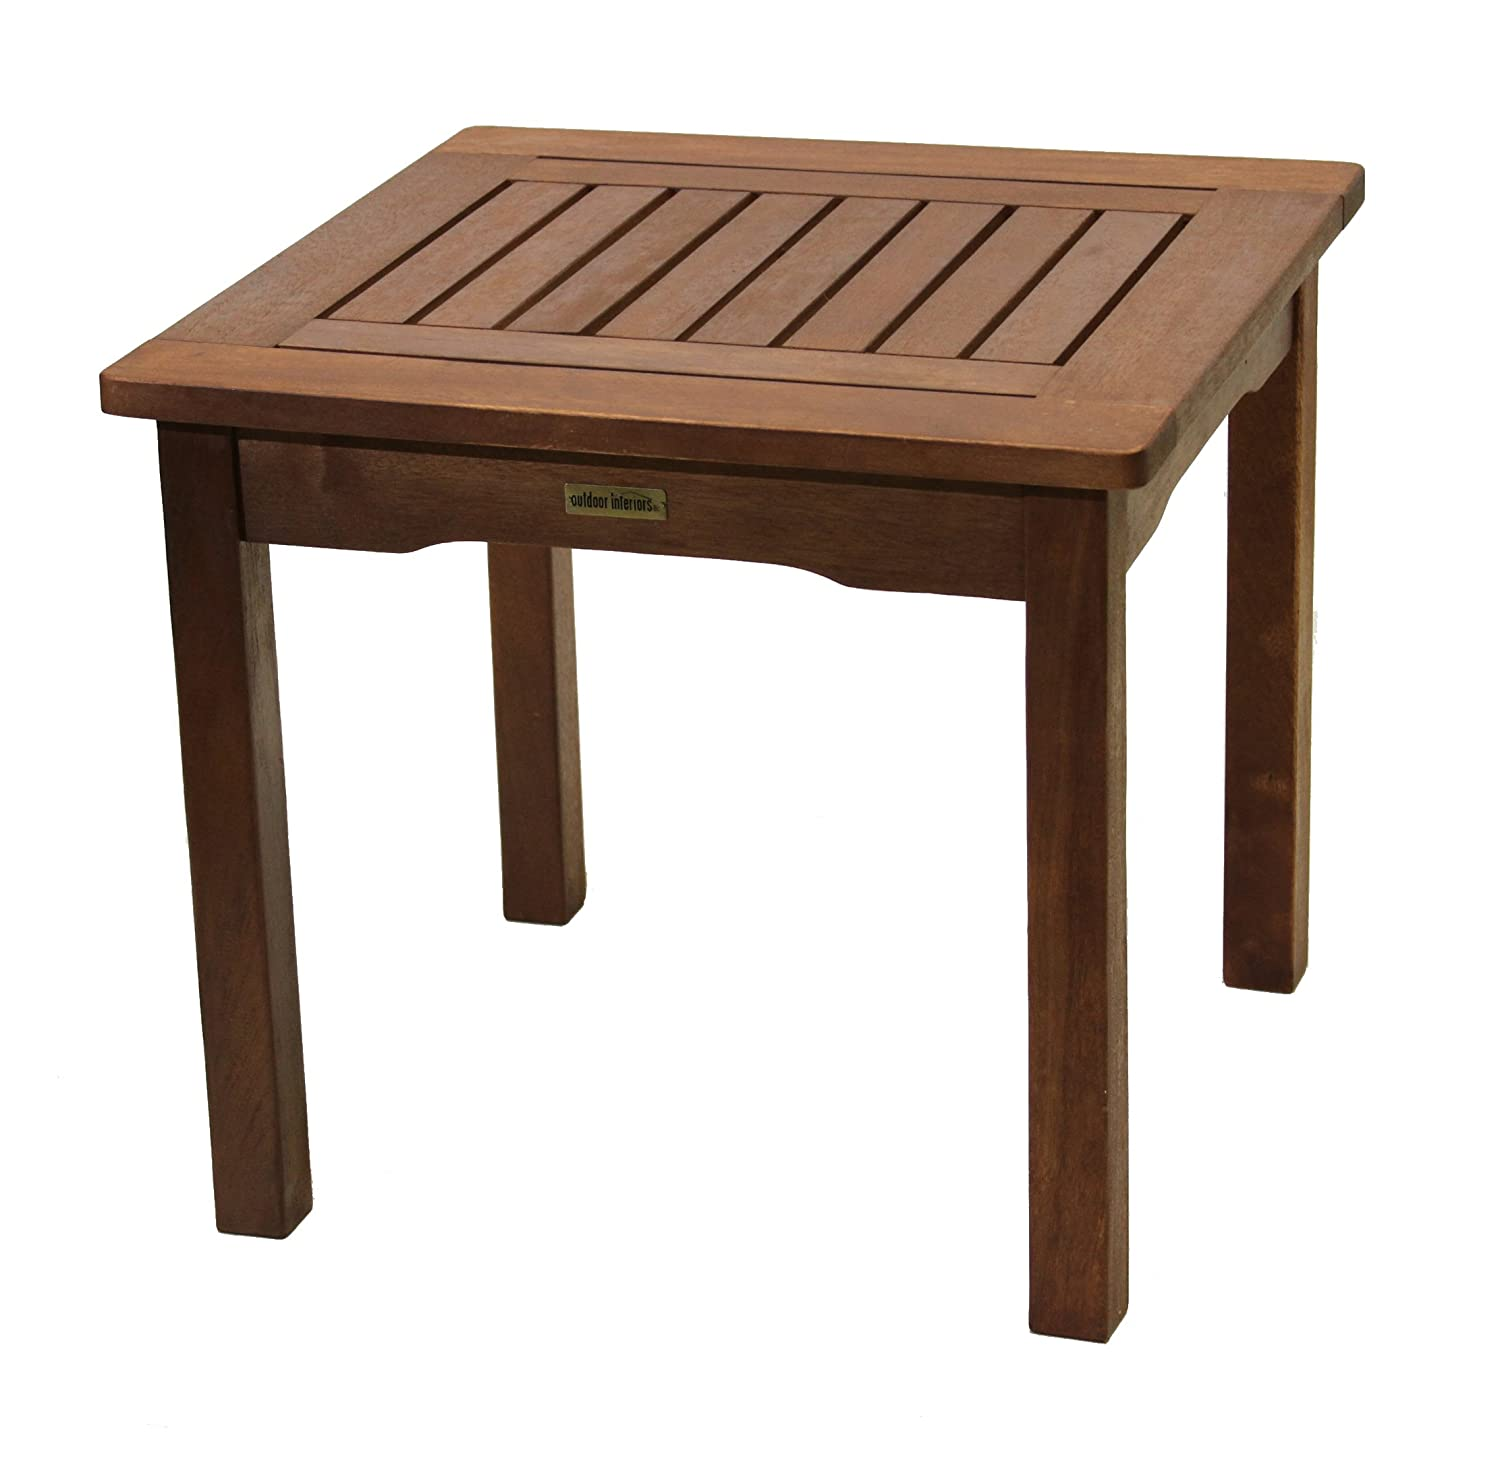 All weather end table eucalyptus easy assembly garden for Small wood end table